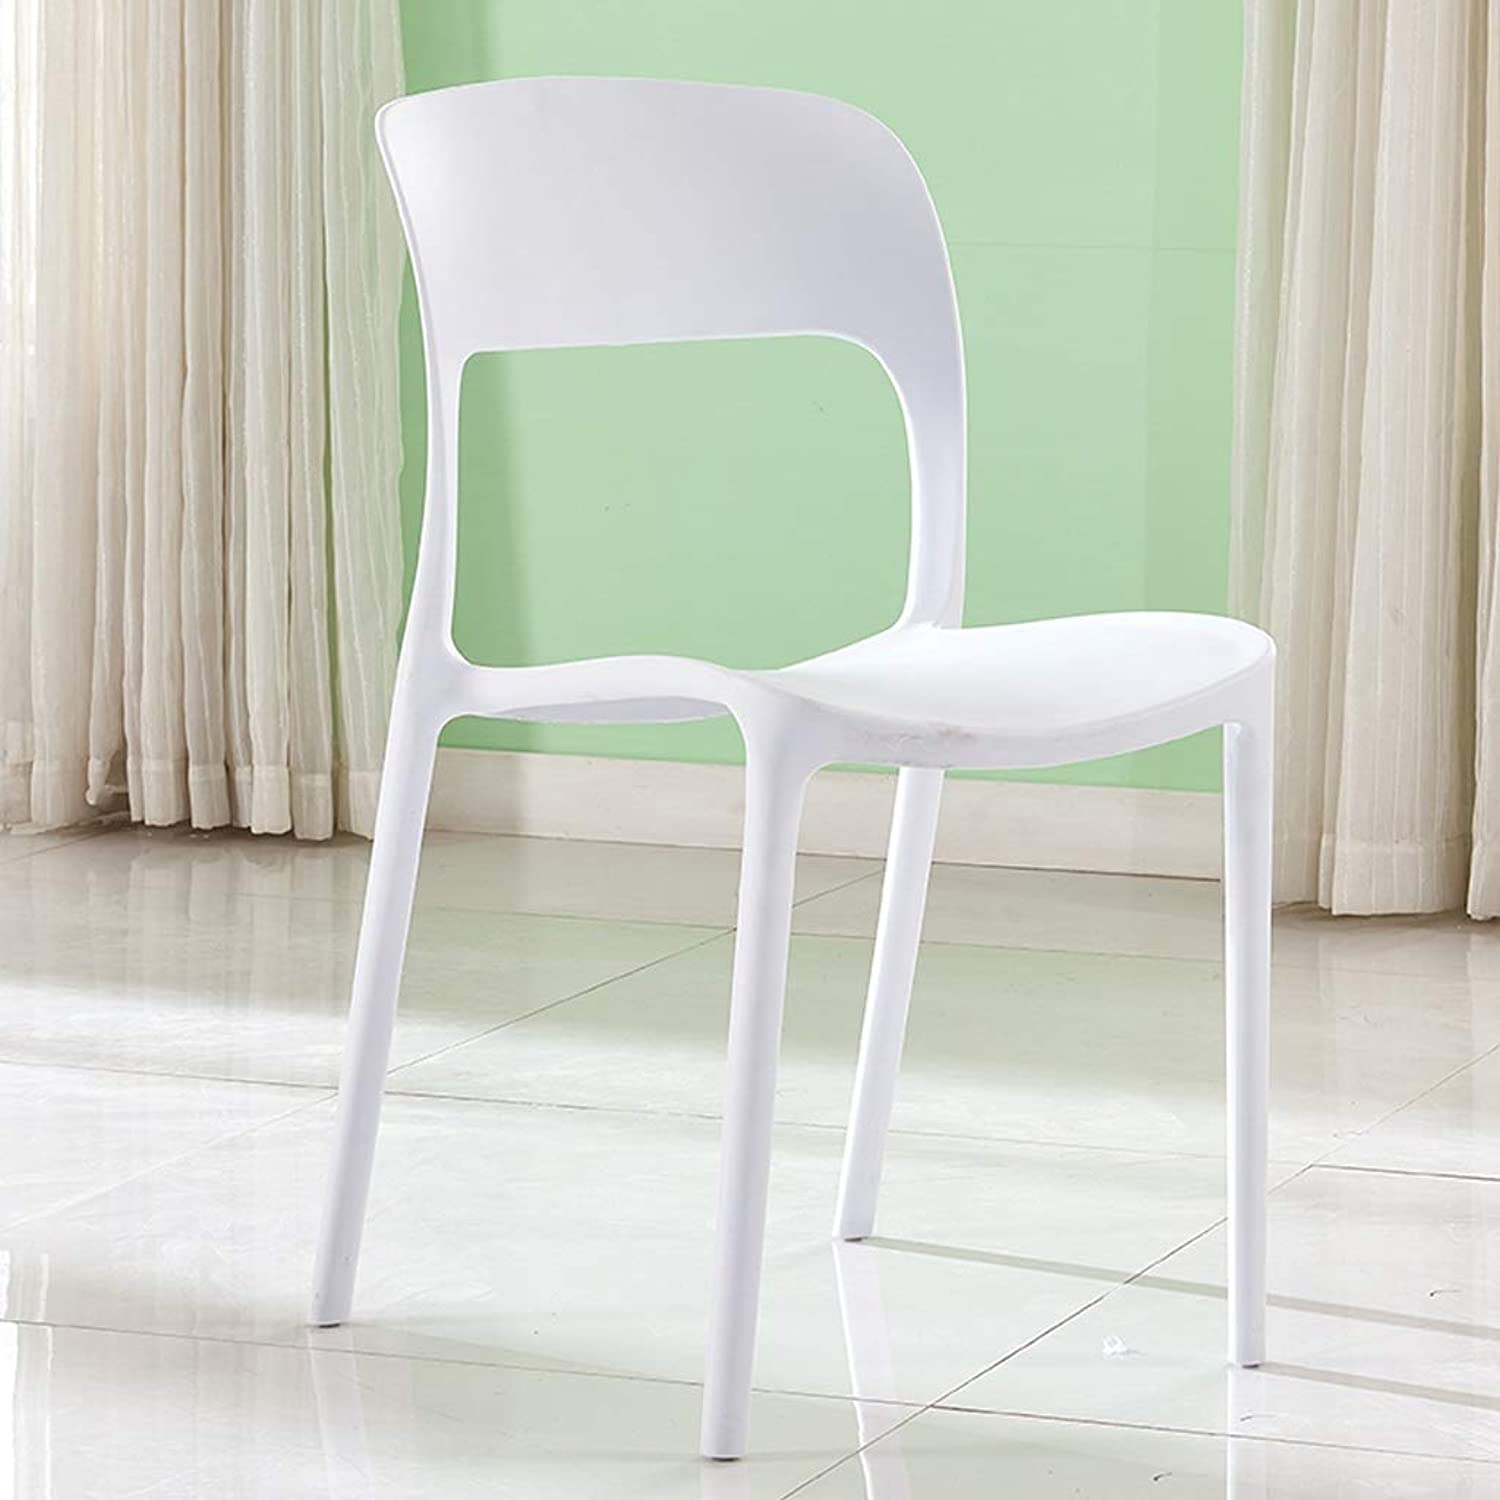 ASJHK Chair Modern Minimalist Thick Plastic Chair Adult Chair Home Dining Table and Chair Five colors Chair (color   White)